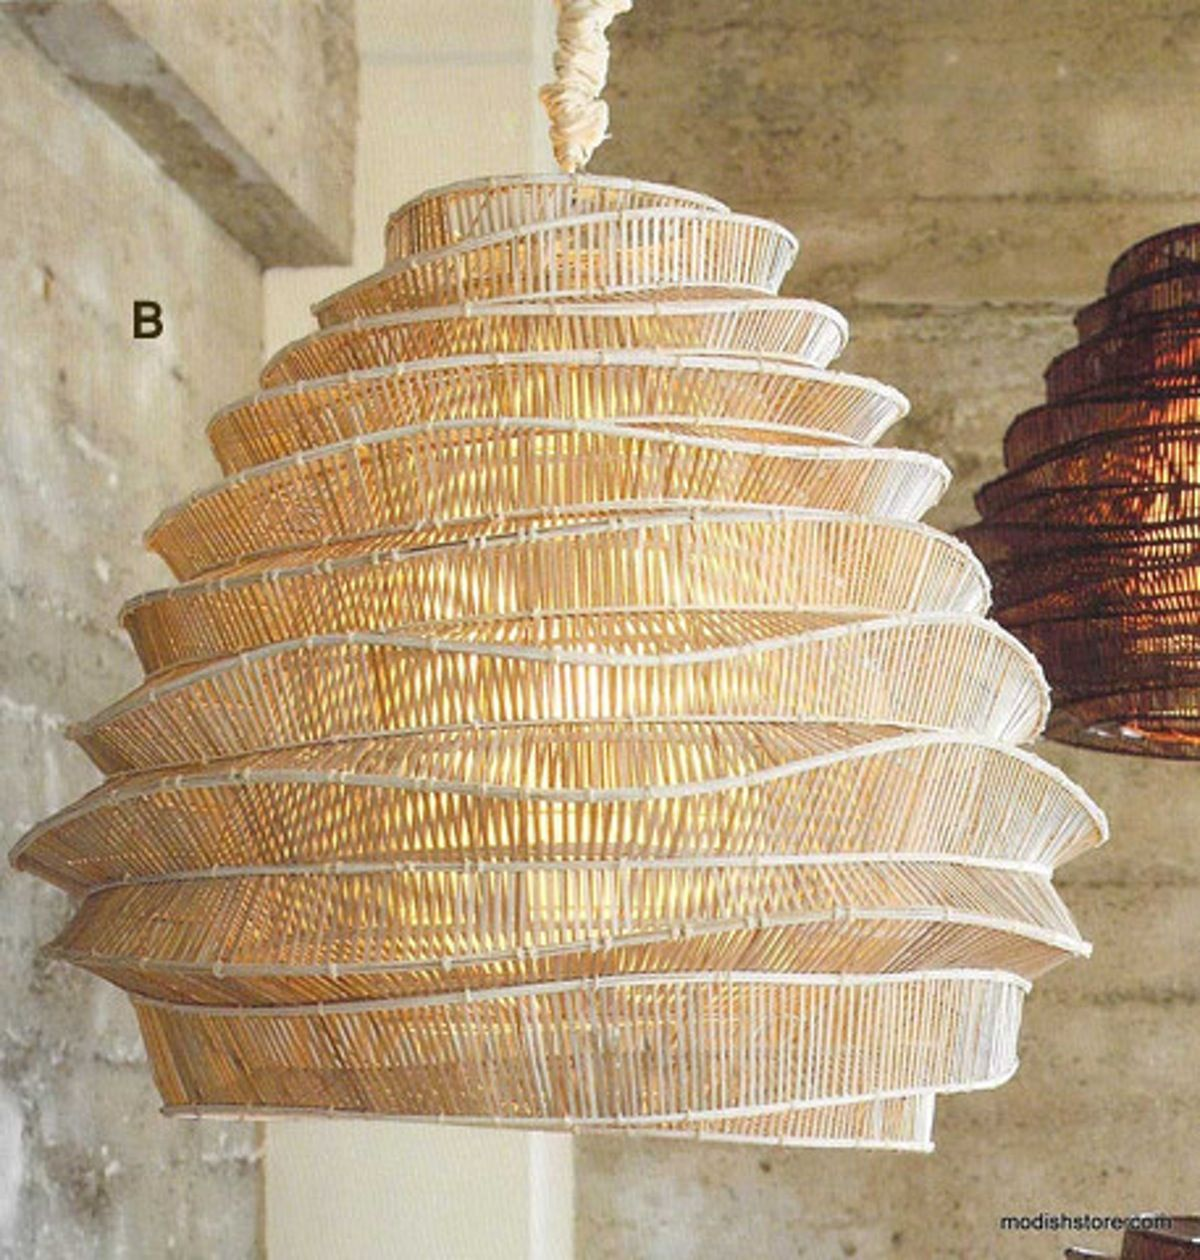 Roost bamboo cloud chandeliers chandeliers traditional and lights roost bamboo cloud chandelier use traditional bamboo weaving techniques to create pendant lighting nimbus and arubaitofo Gallery